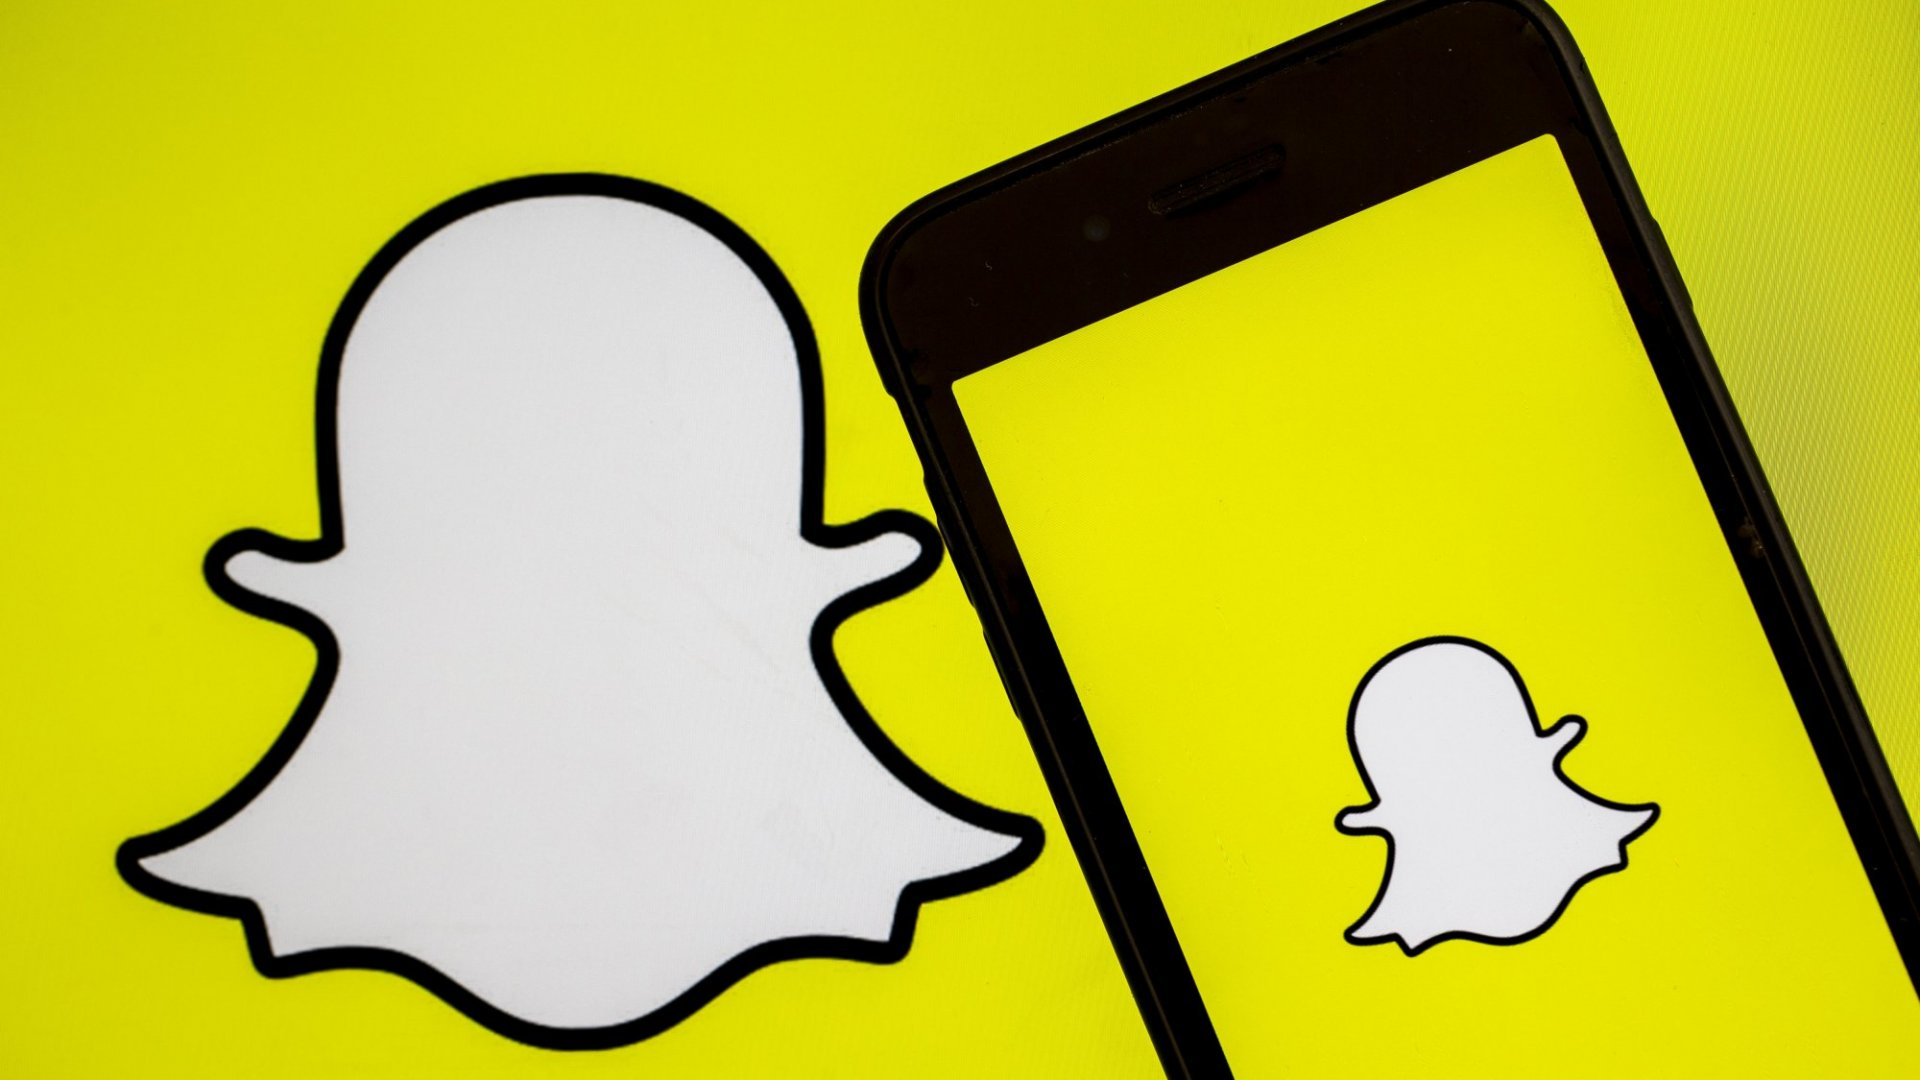 Snap's CEO Isn't 'Write' About Anything